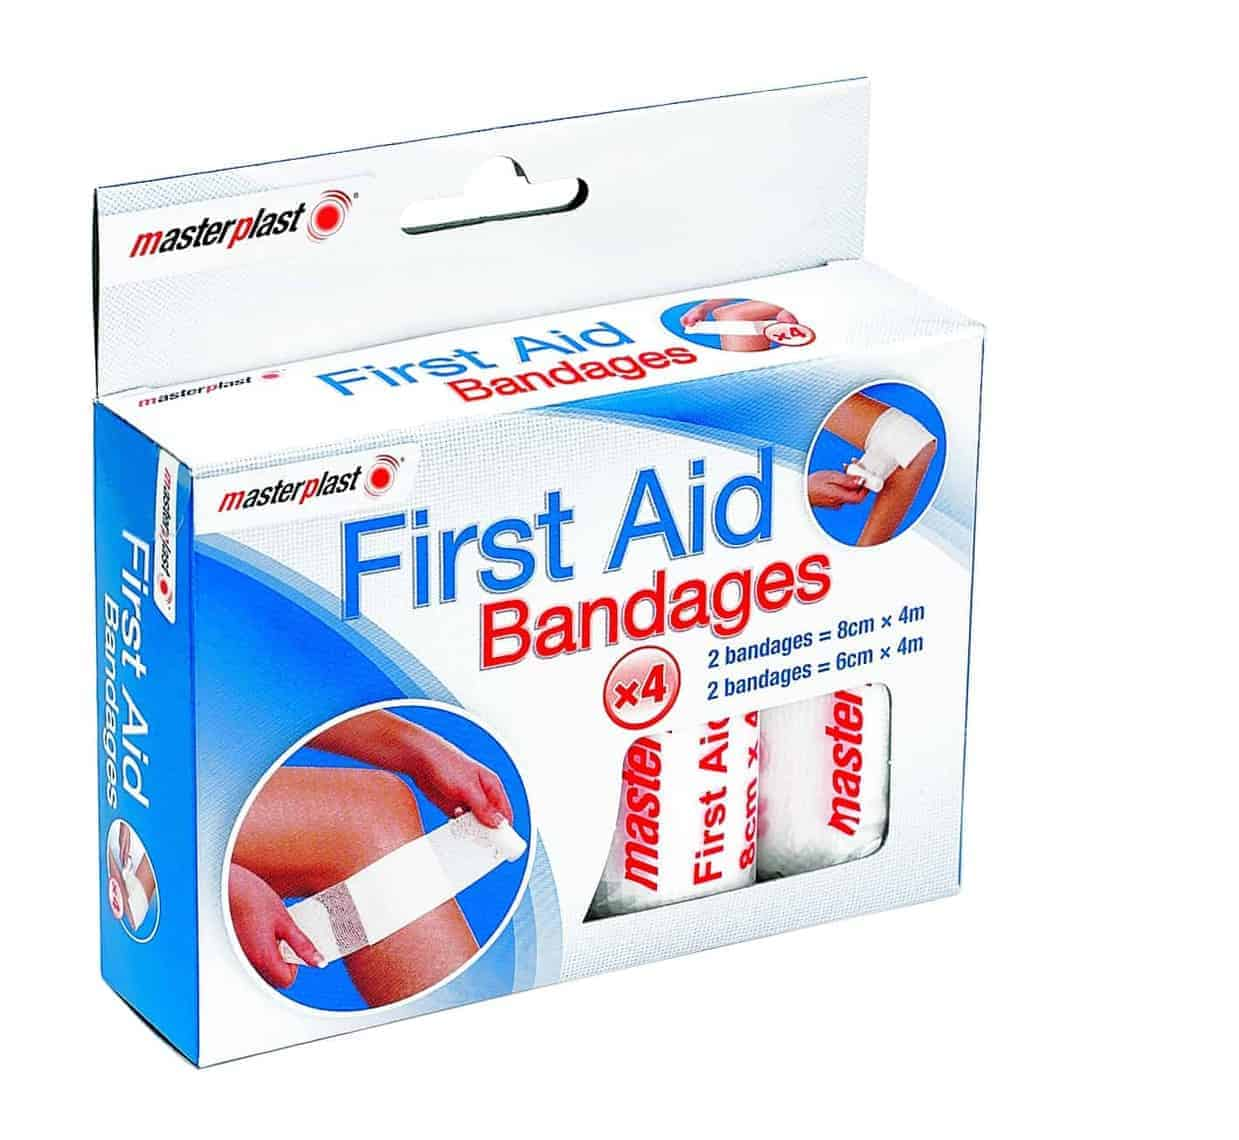 Master Plast First Aid Bandages 4pk